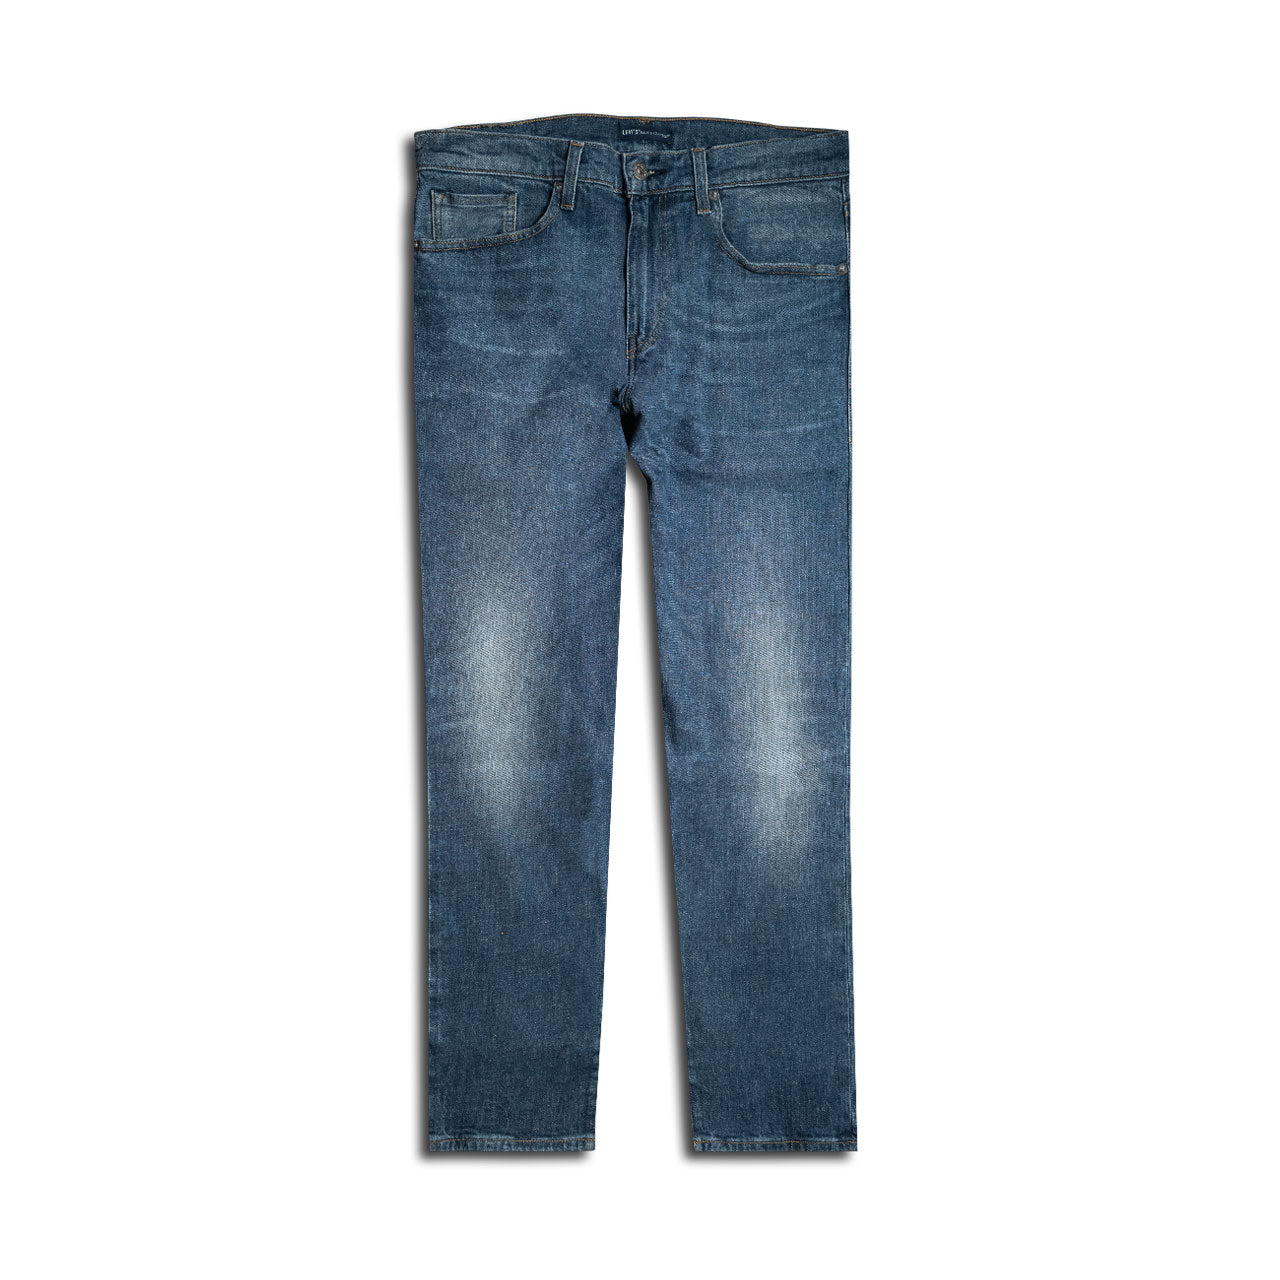 Levi's Made & Crafted 502 Selvedge Jeans